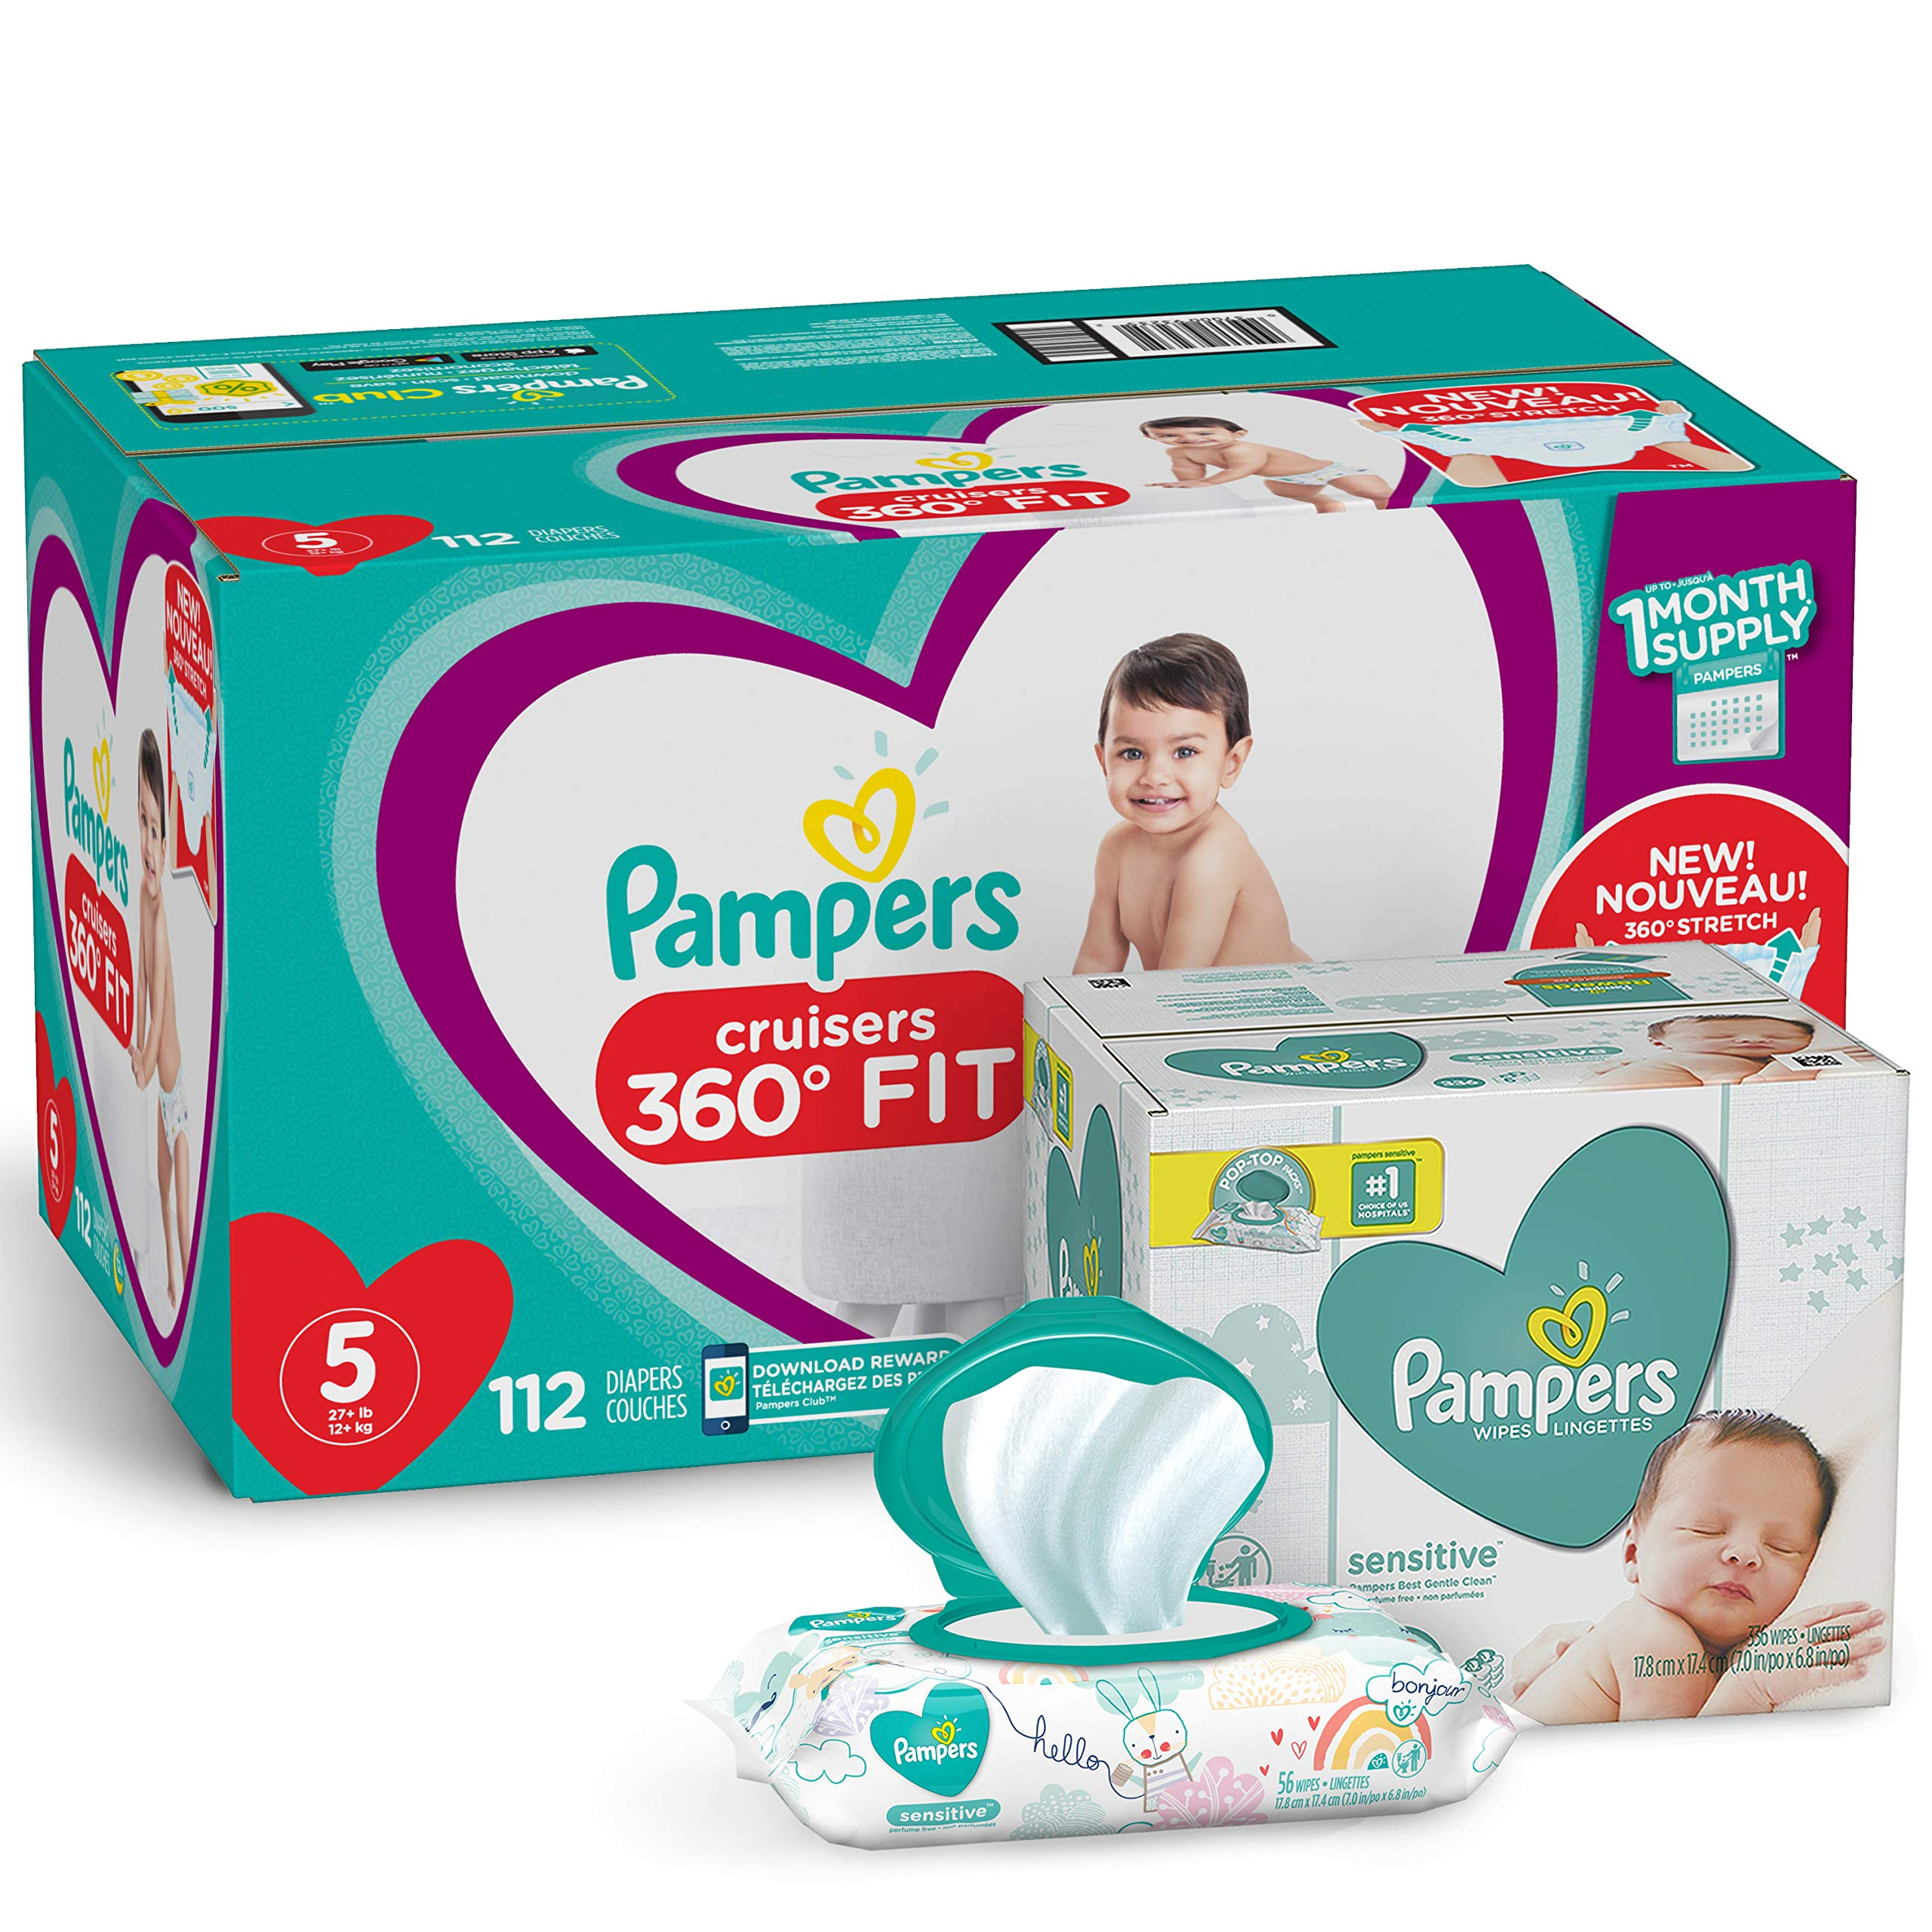 Pampers Pull On Diapers Size 5 - Cruisers 360˚ Fit Disposable Baby Diapers with Stretchy Waistband, 112 Count ONE Month Supply with Baby Wipes Sensitive 6X Pop-Top Packs, 336 Count